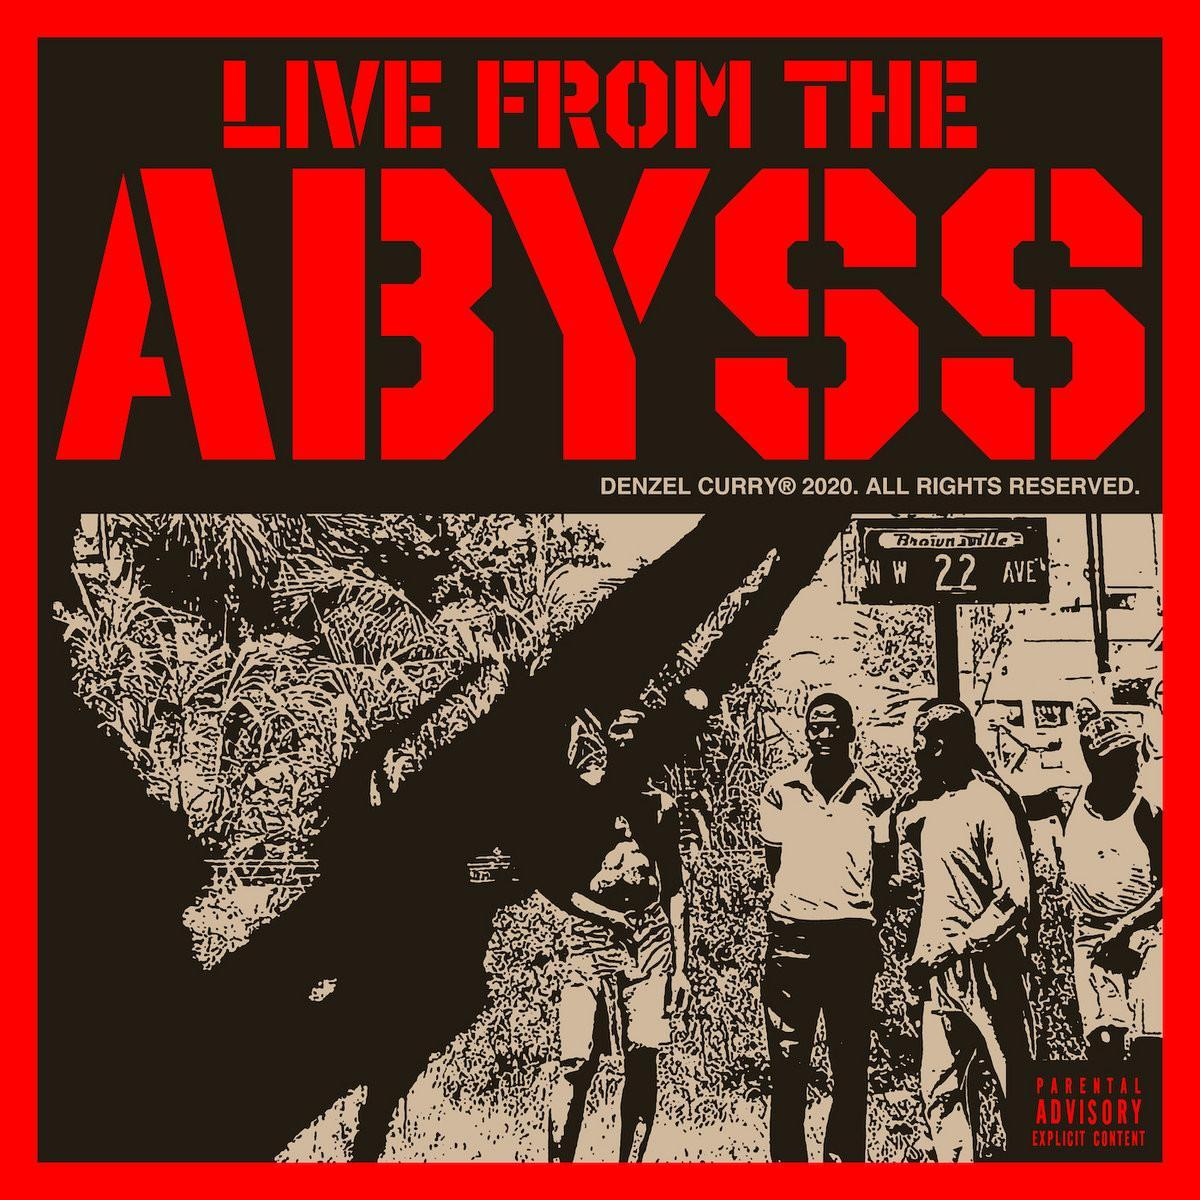 denzel curry live from the abyss Denzel Curry Unleashes Furious New Song Live from the Abyss: Stream